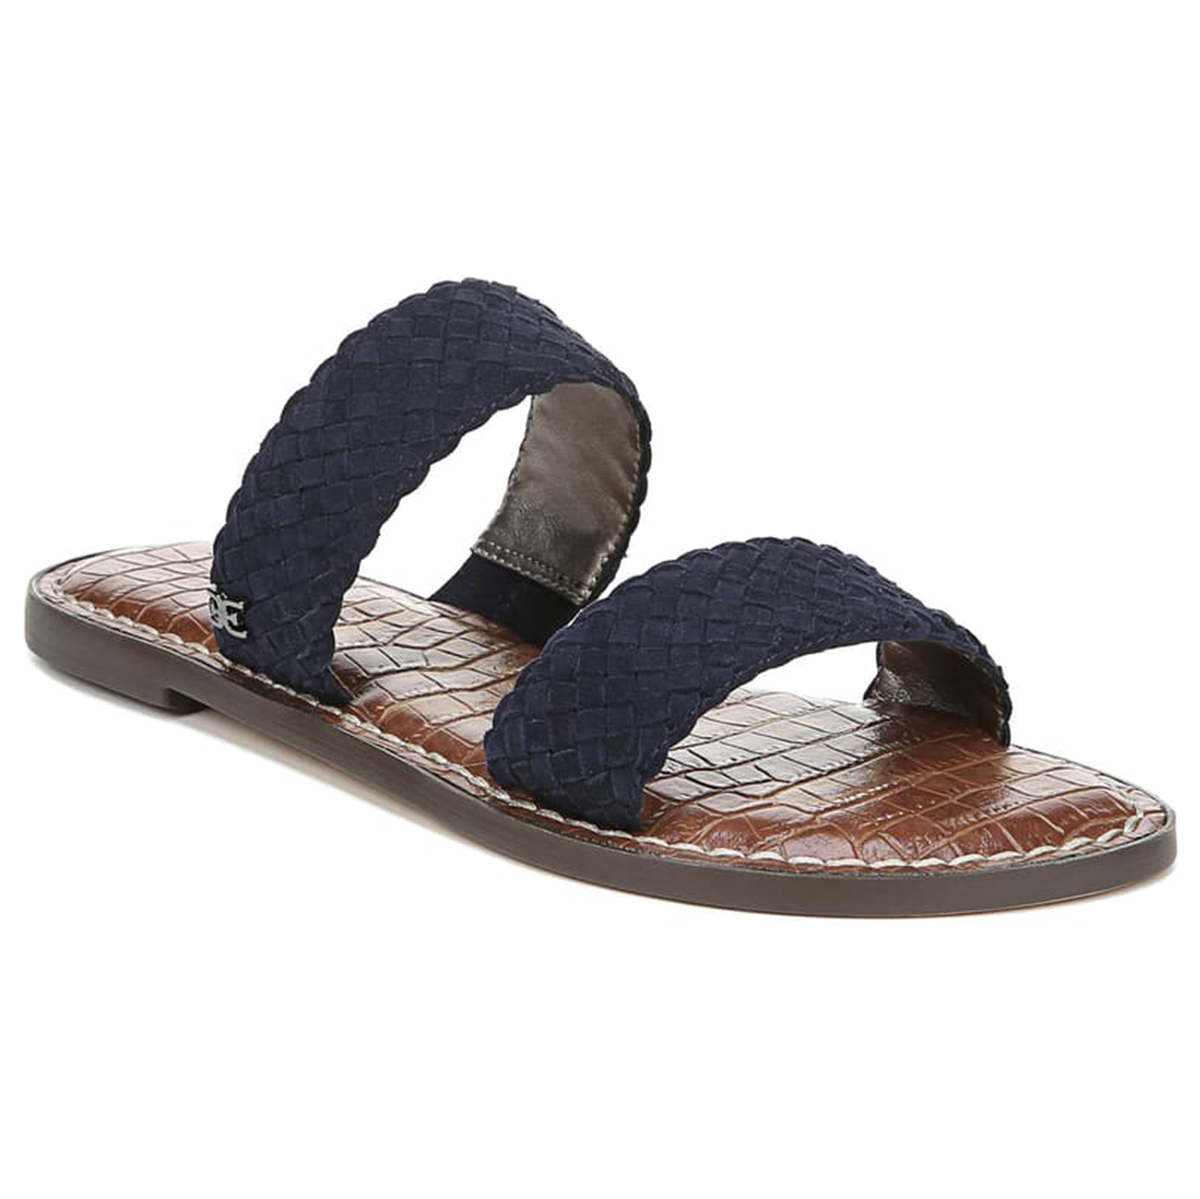 380f138d5 These Sam Edelman Slides Are 30% Off in Every Color